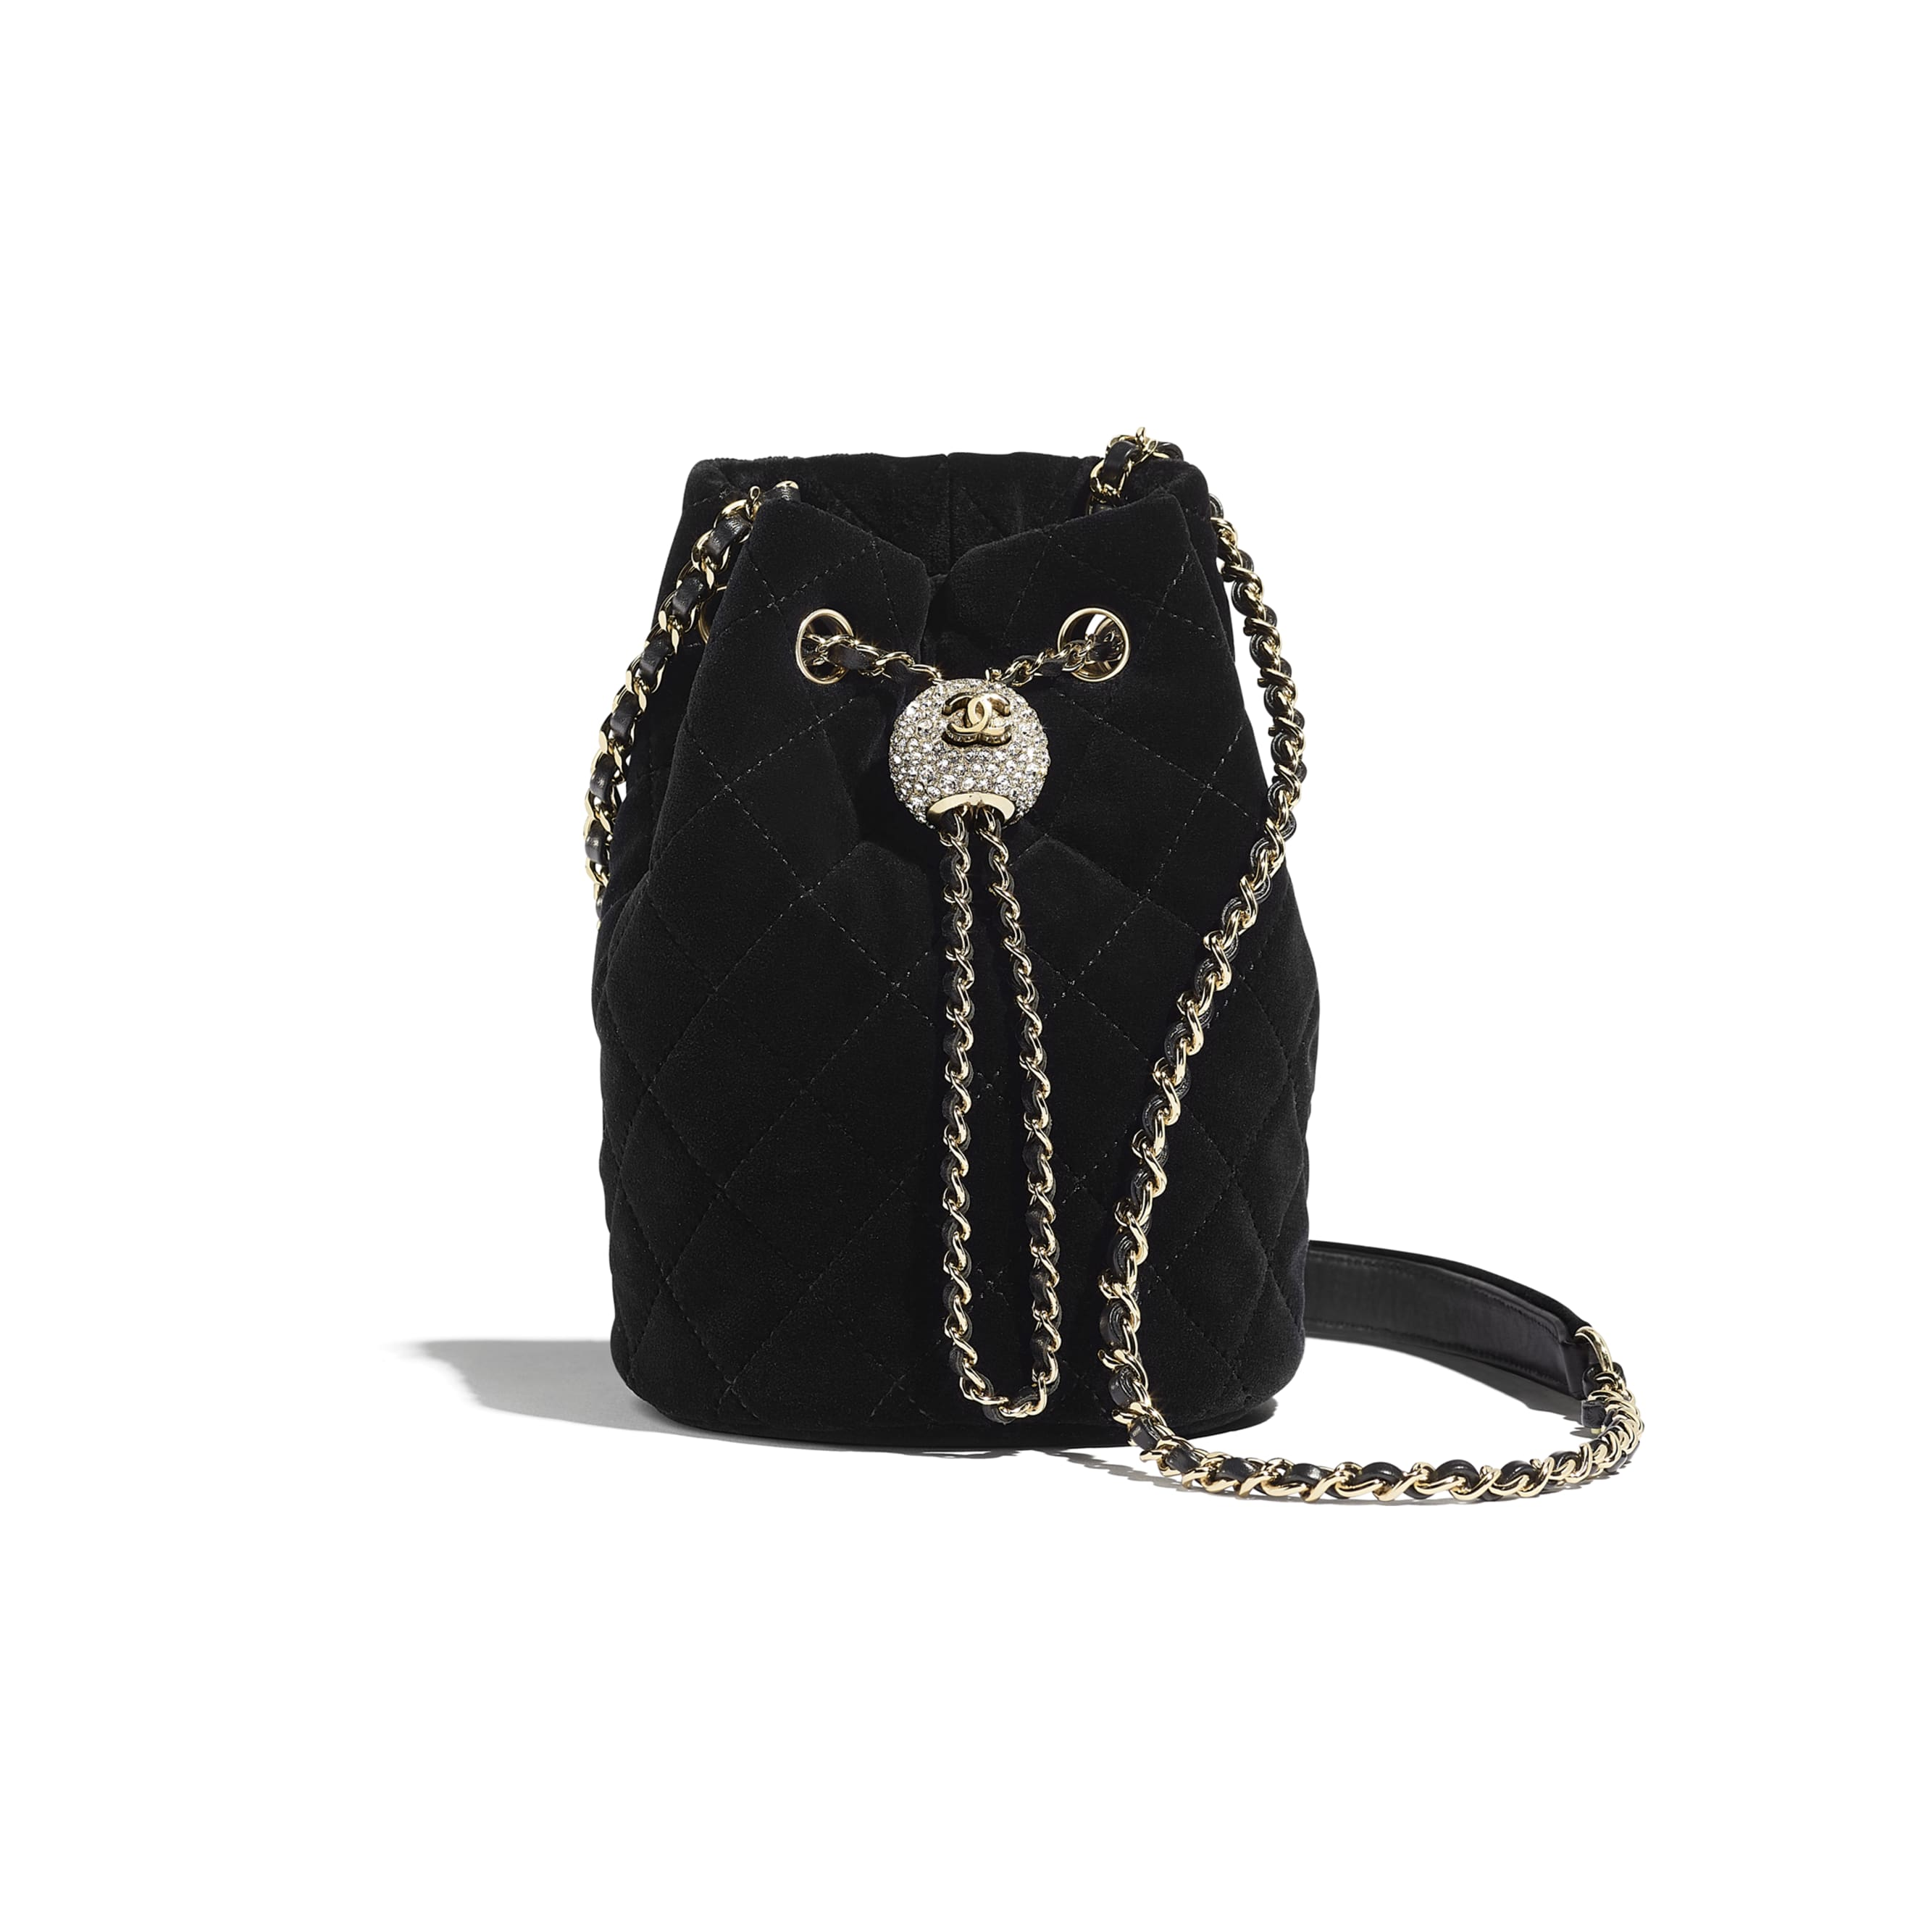 Drawstring Bag - Black - Velvet, Diamanté & Gold-Tone Metal - CHANEL - Default view - see standard sized version